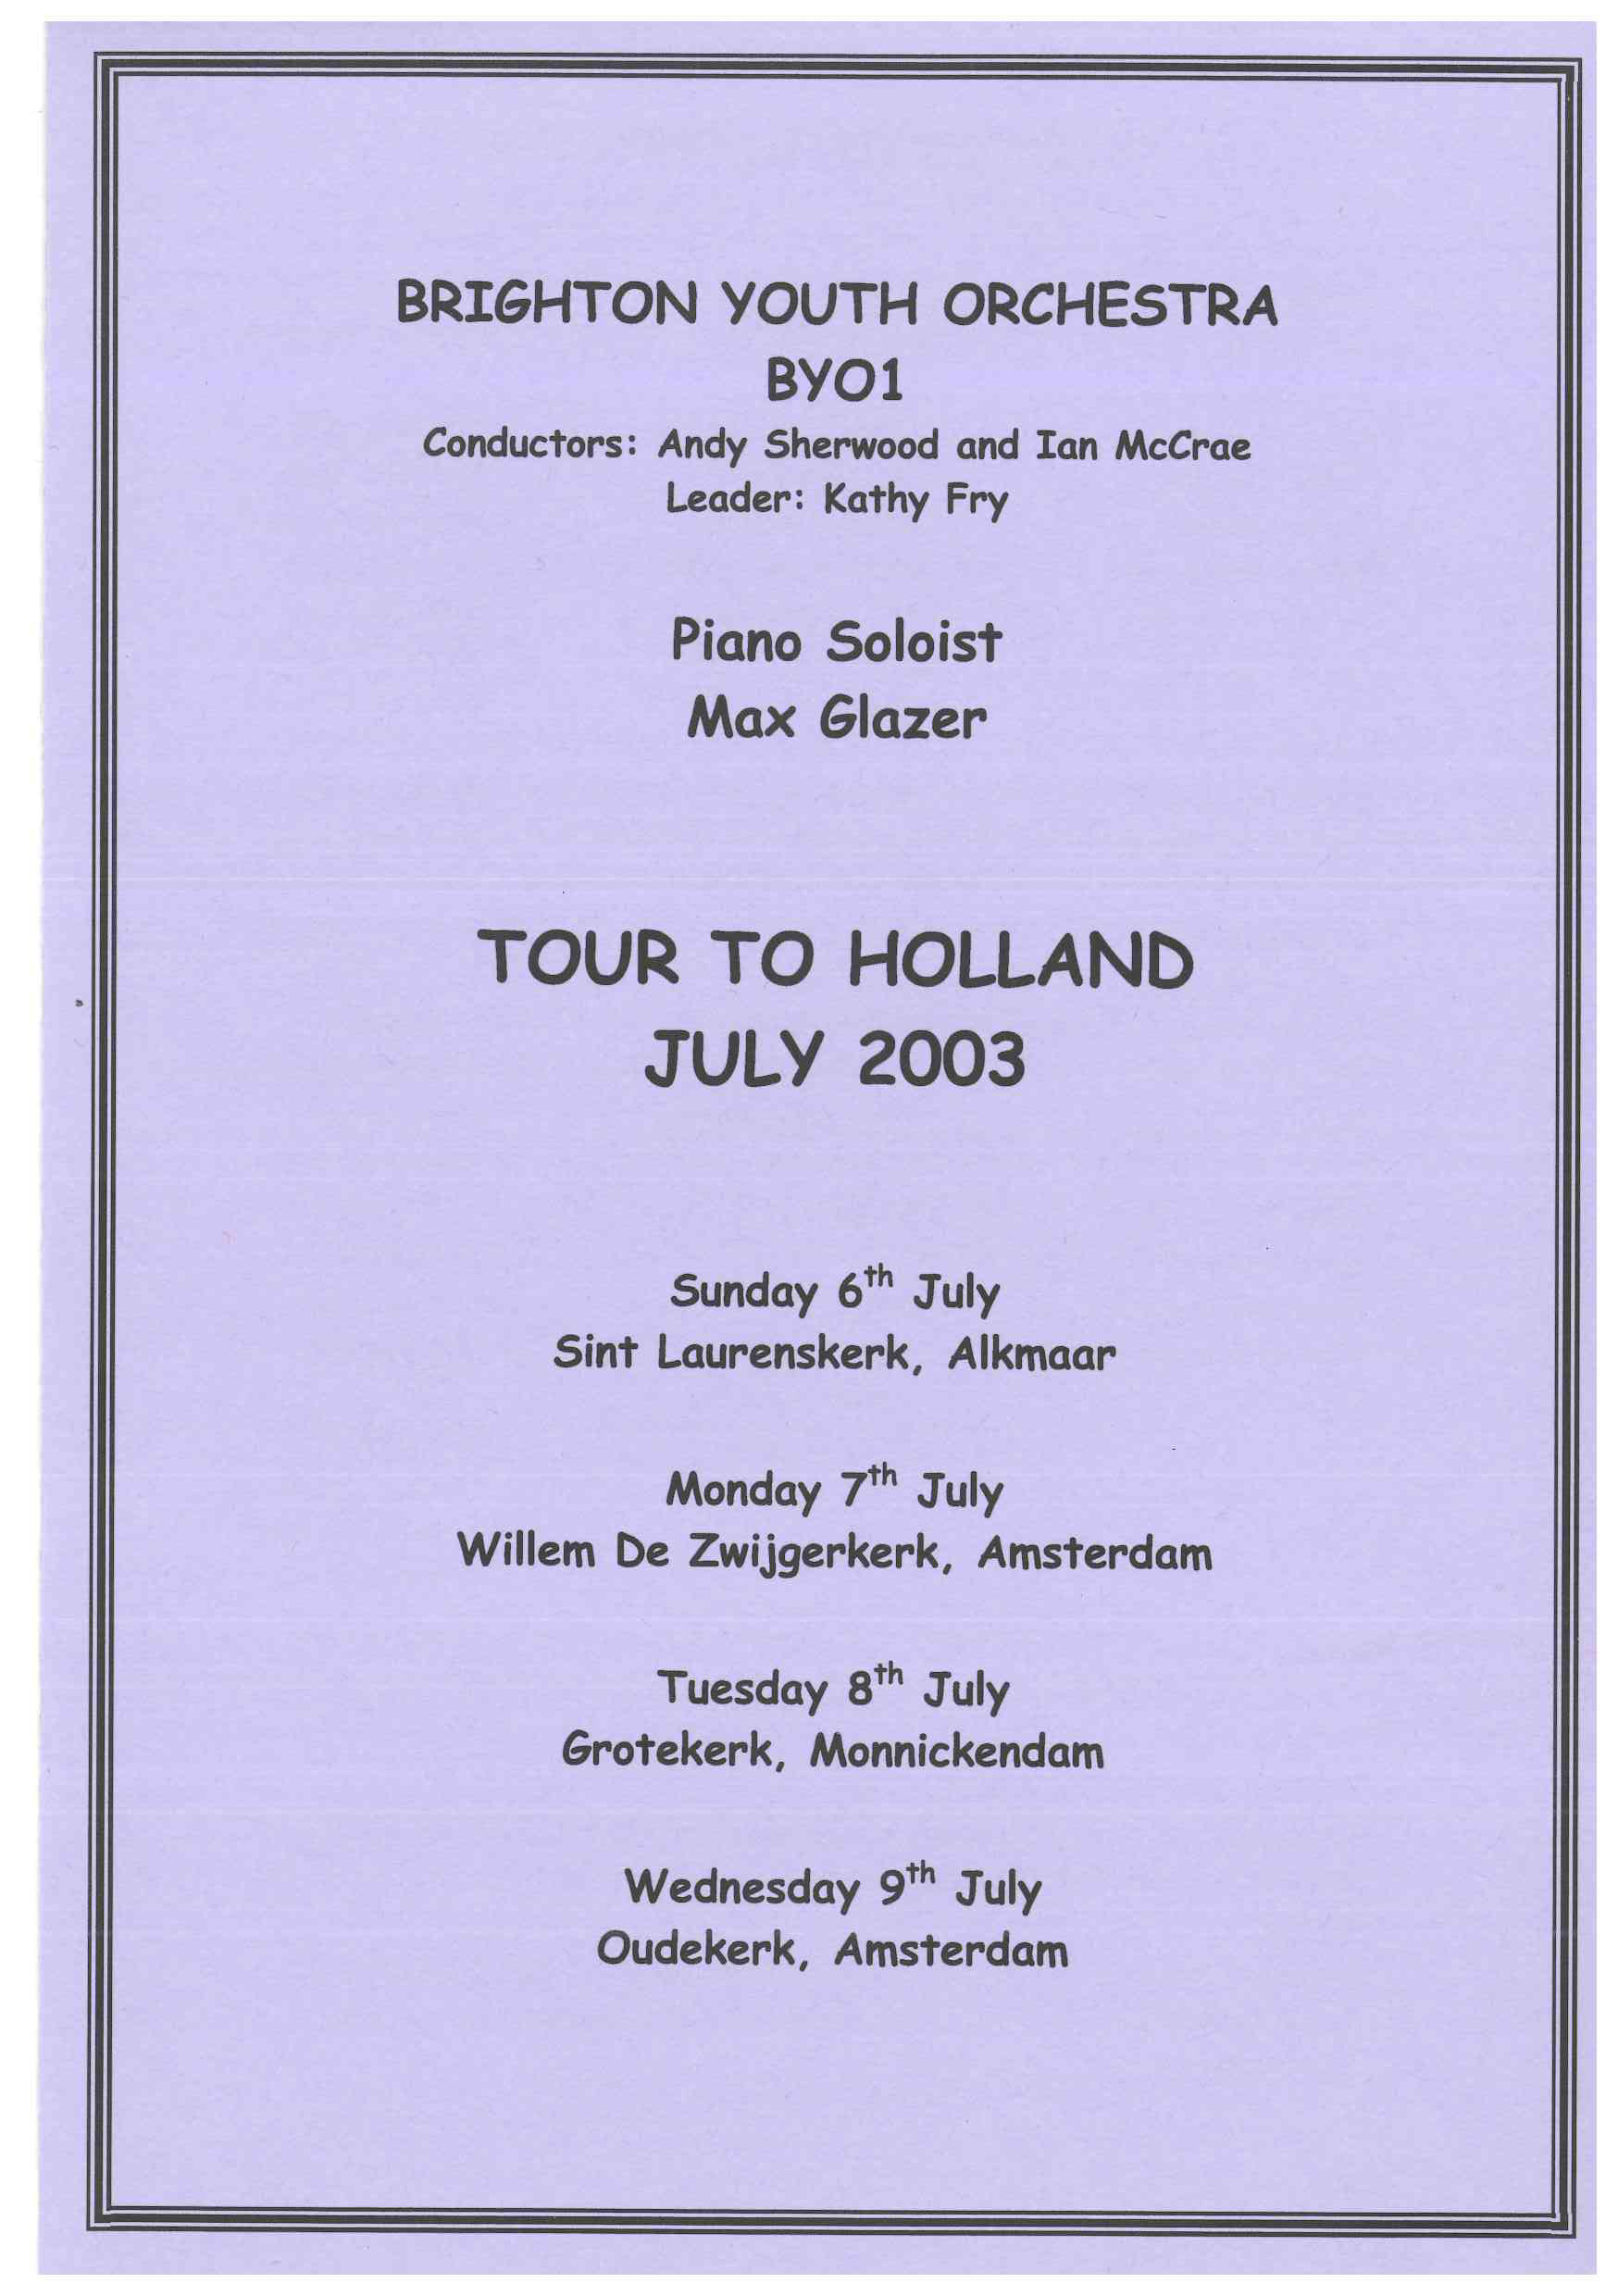 00390-BYO1- Tour to Holland, July 2003.jpg